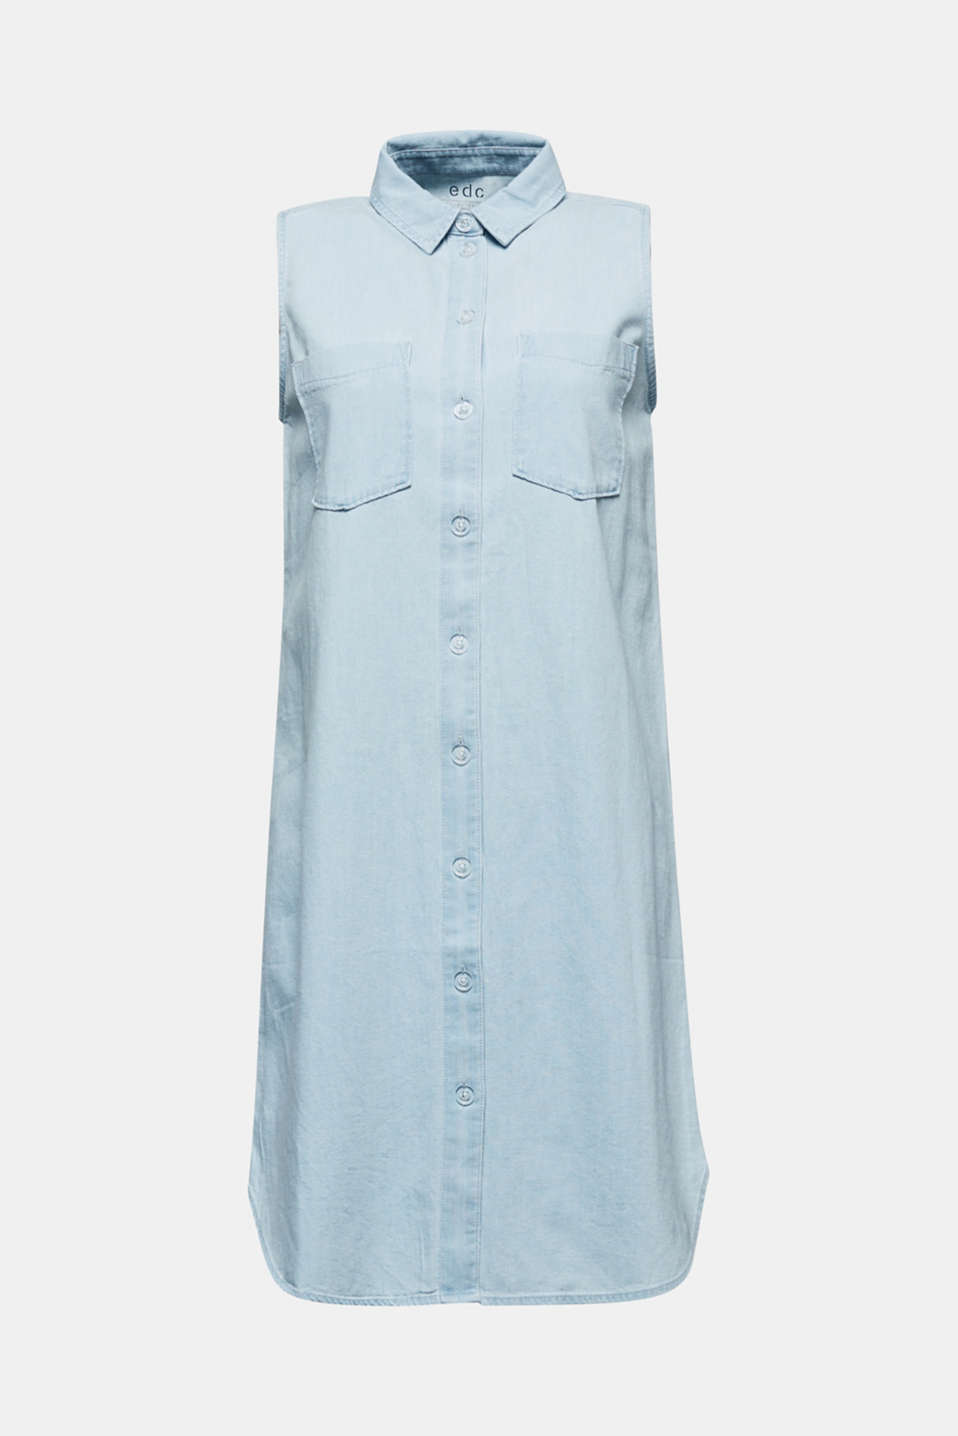 A-line denim dress, BLUE BLEACHED, detail image number 6